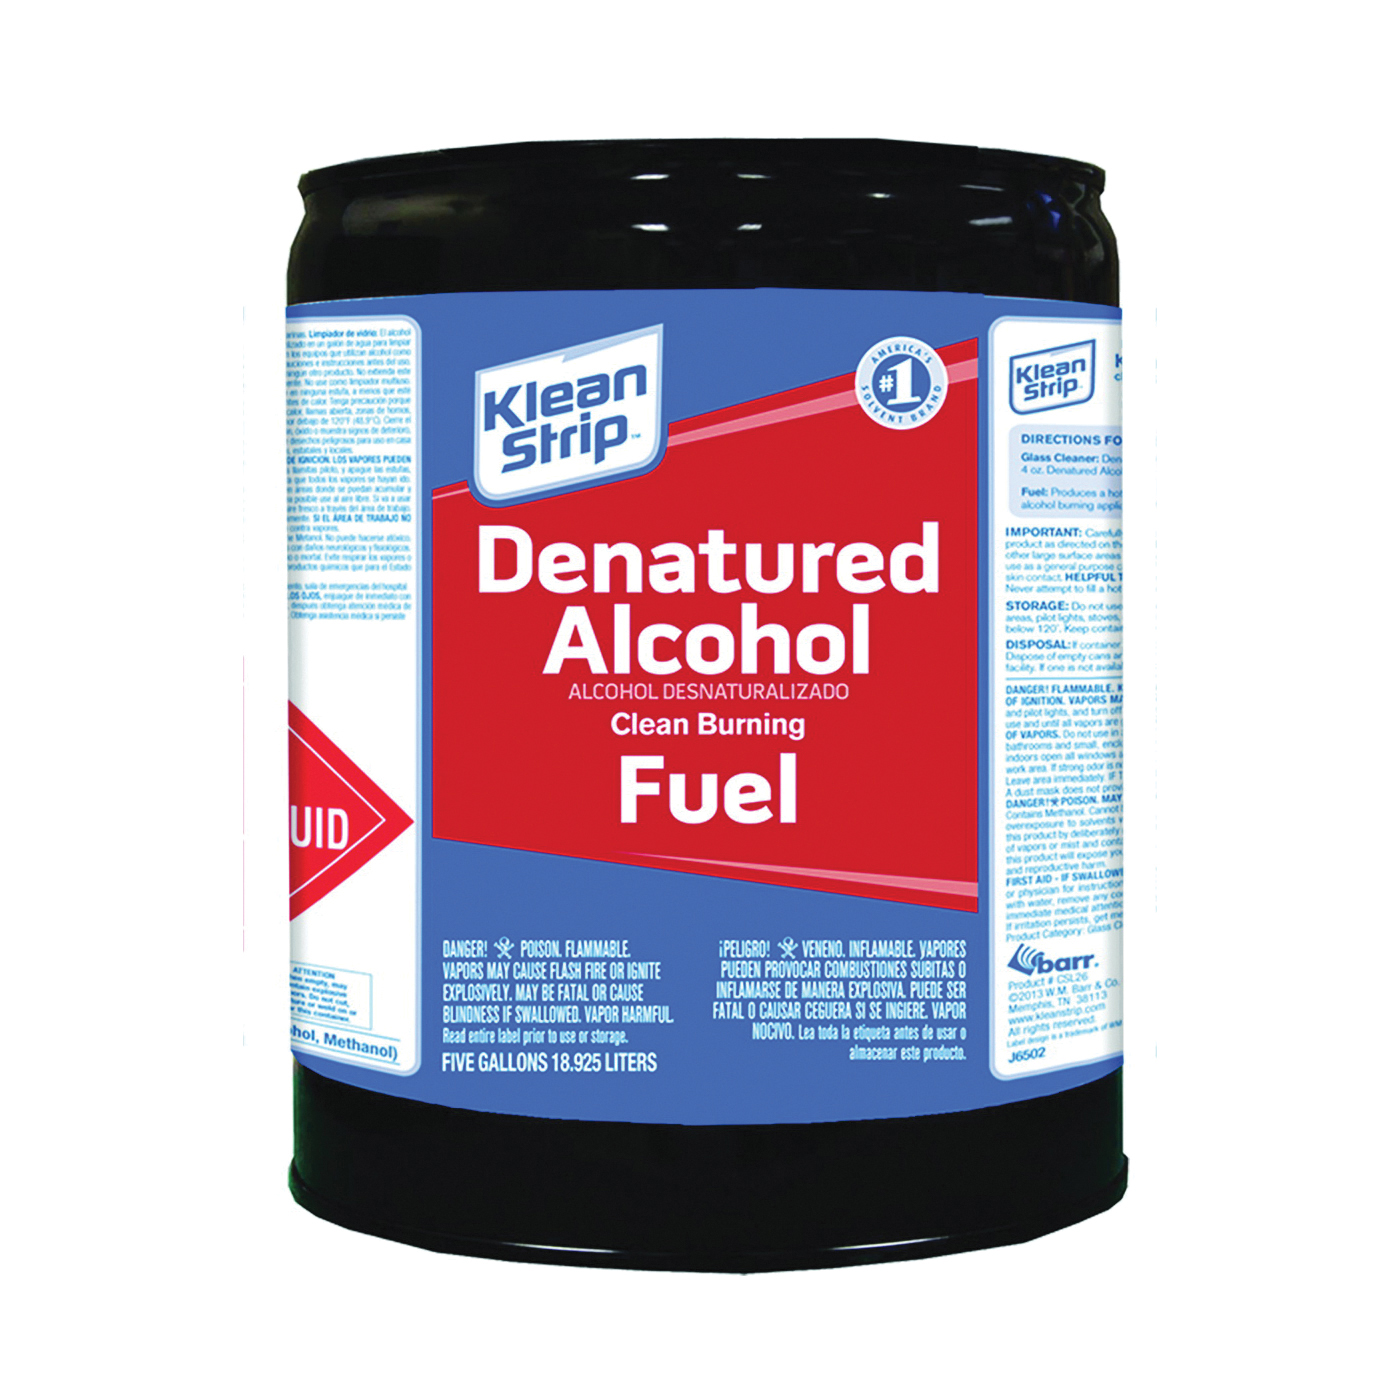 Picture of Klean Strip CSL26 Denatured Alcohol Fuel, Liquid, Alcohol, Water White, 5 gal, Can